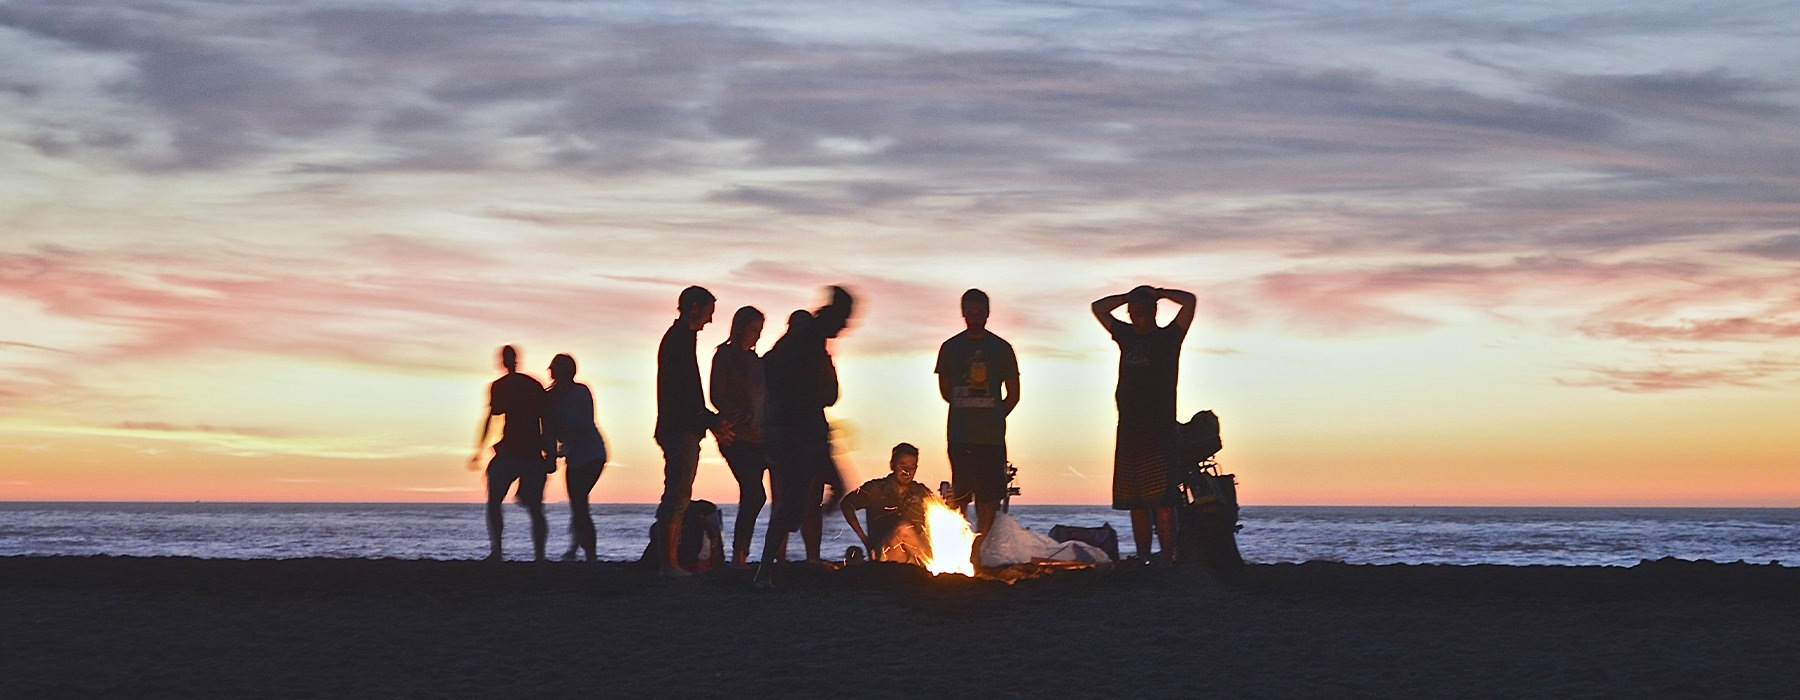 A group of friends hanging out on the beach at sunset